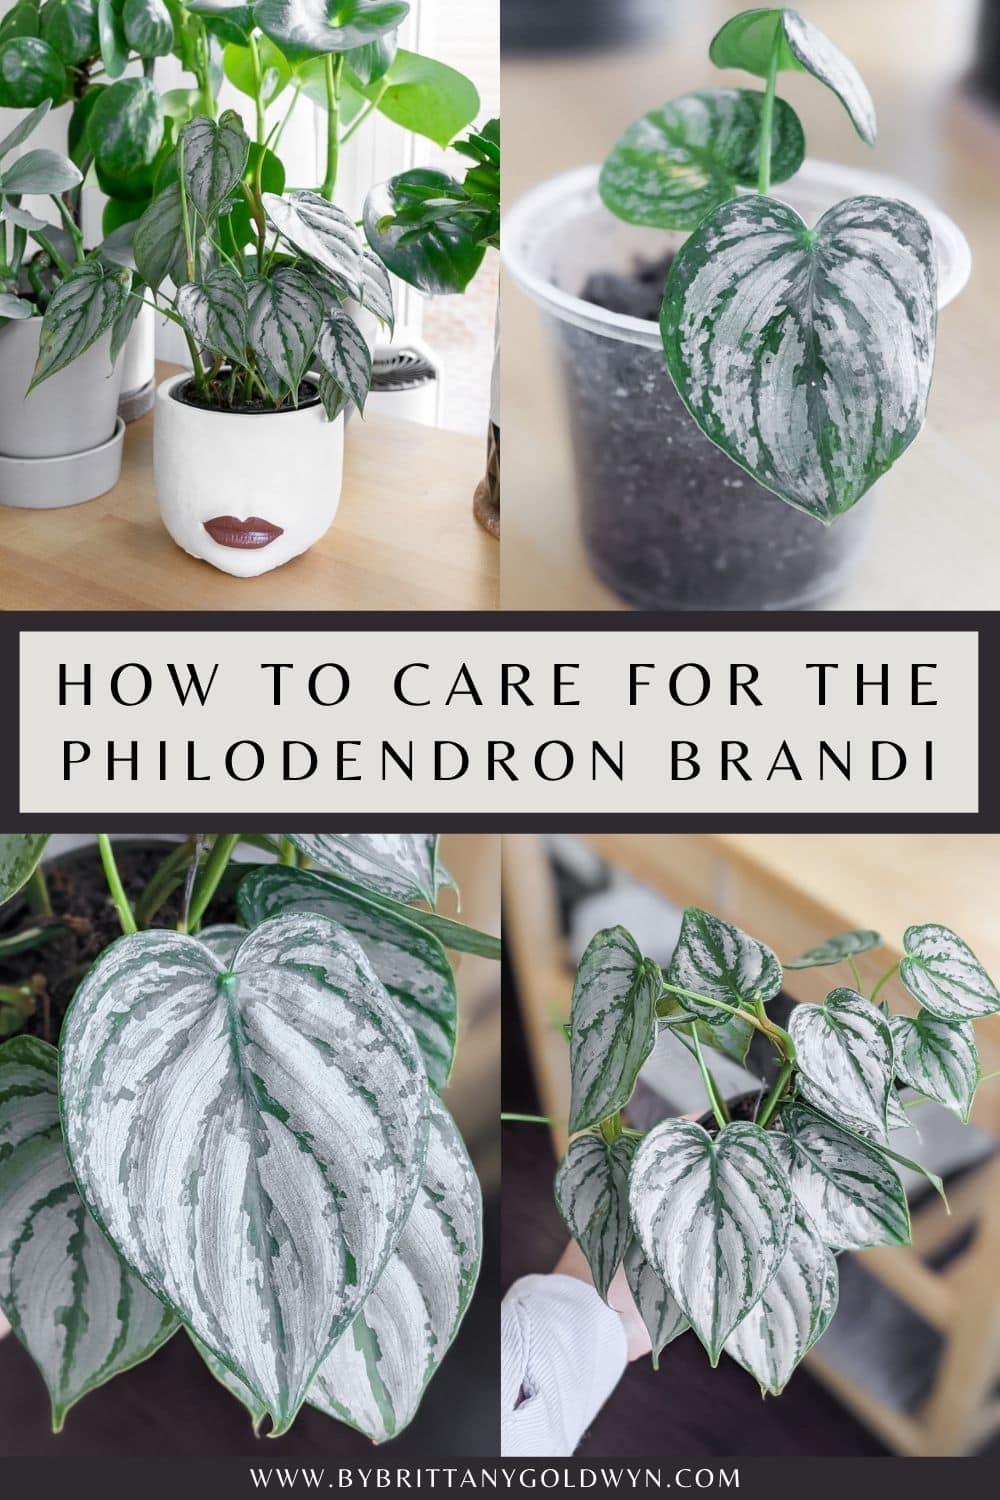 Philodendron Brandtianum care pinnable graphic with text overlay